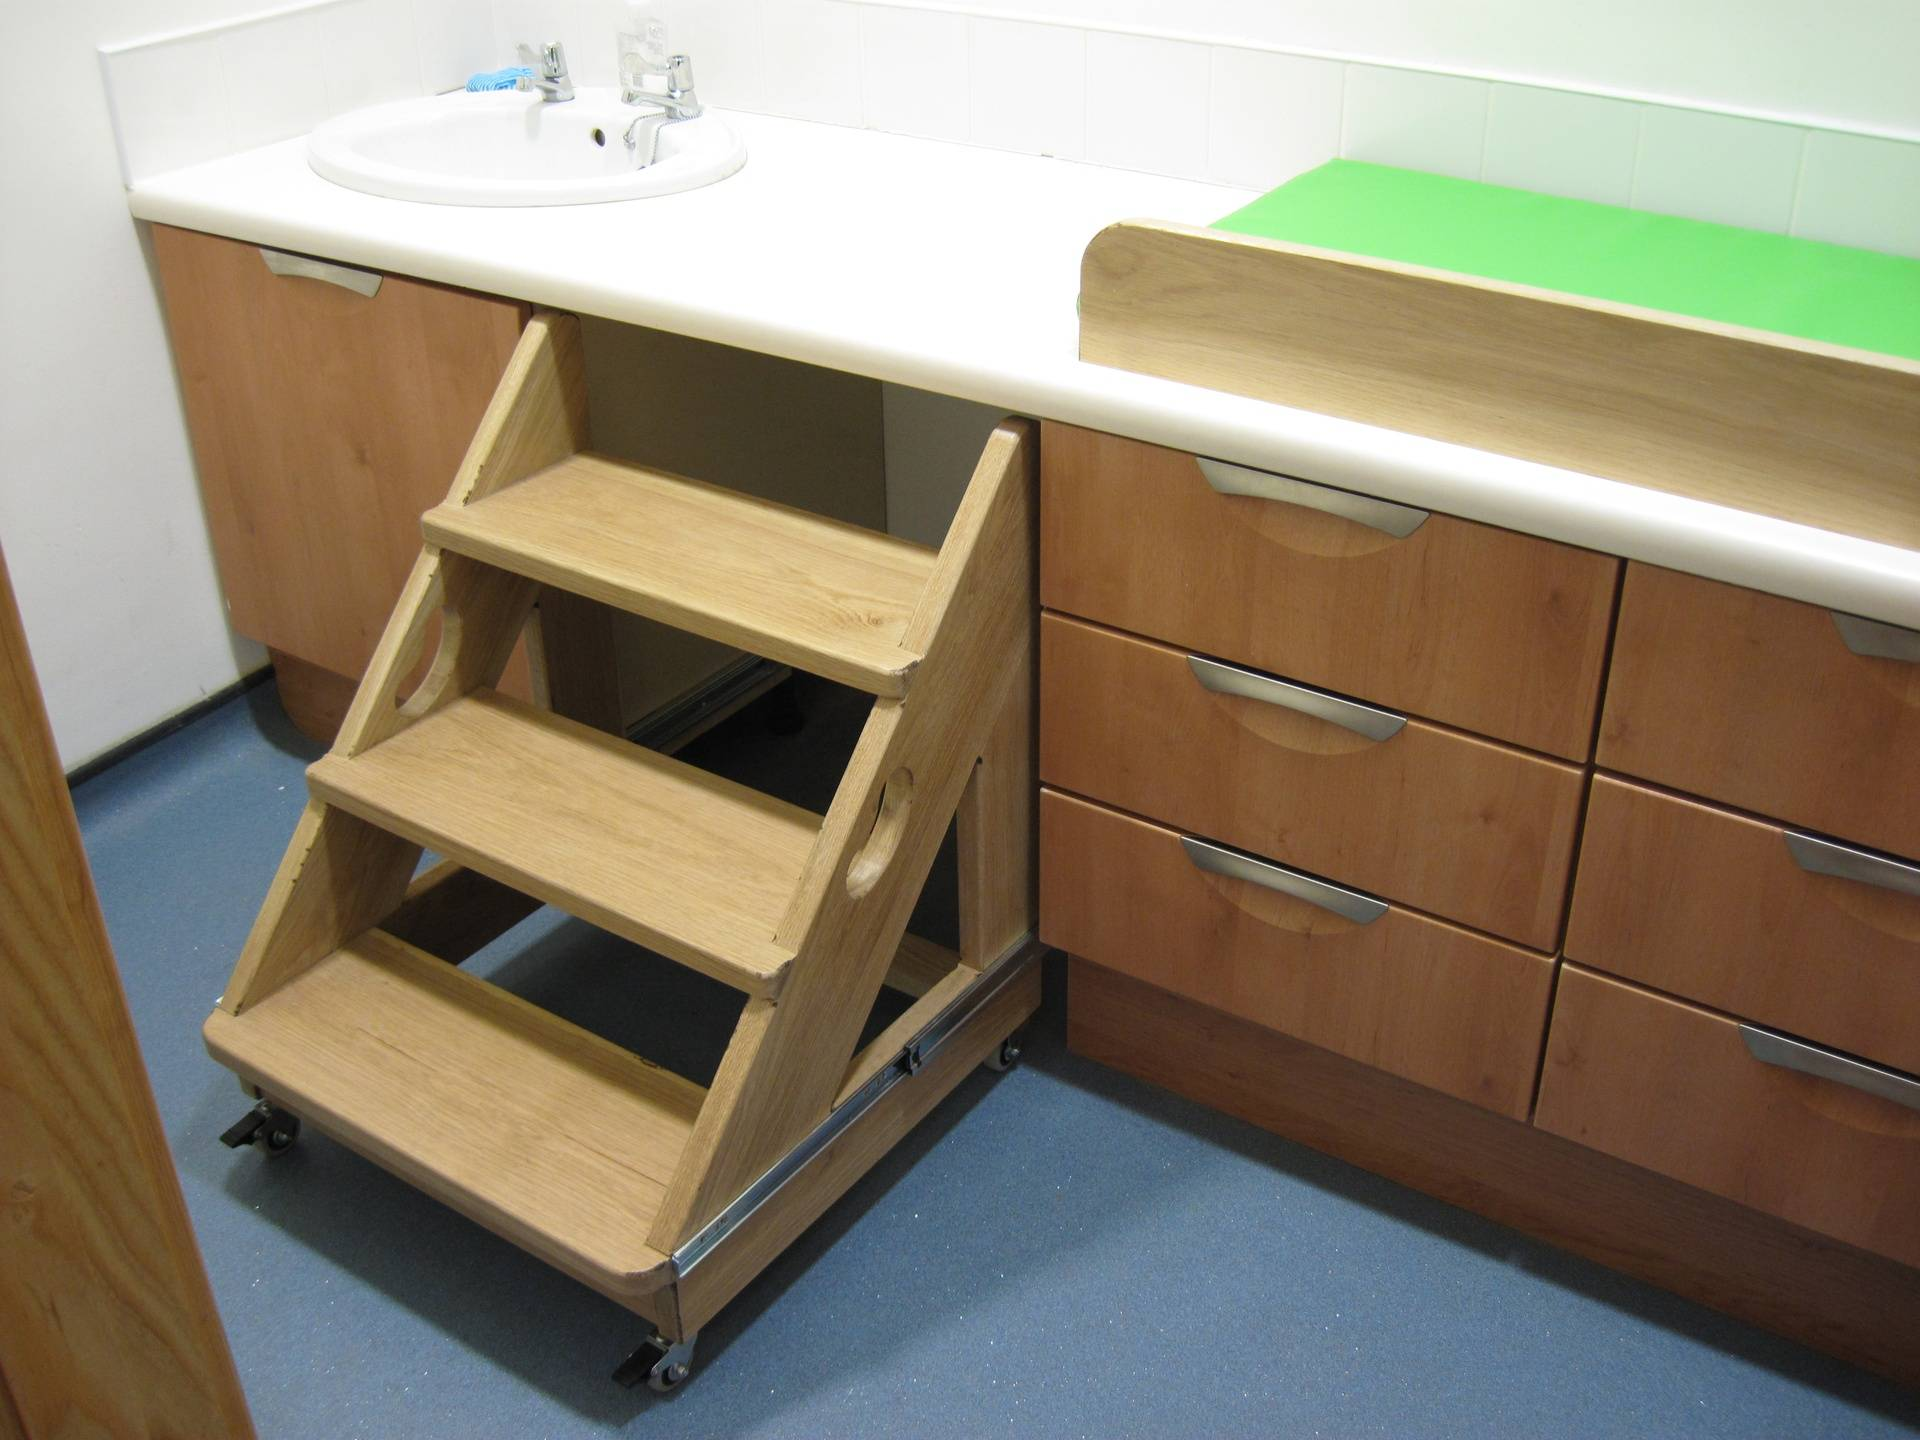 Changing table with wooden steps